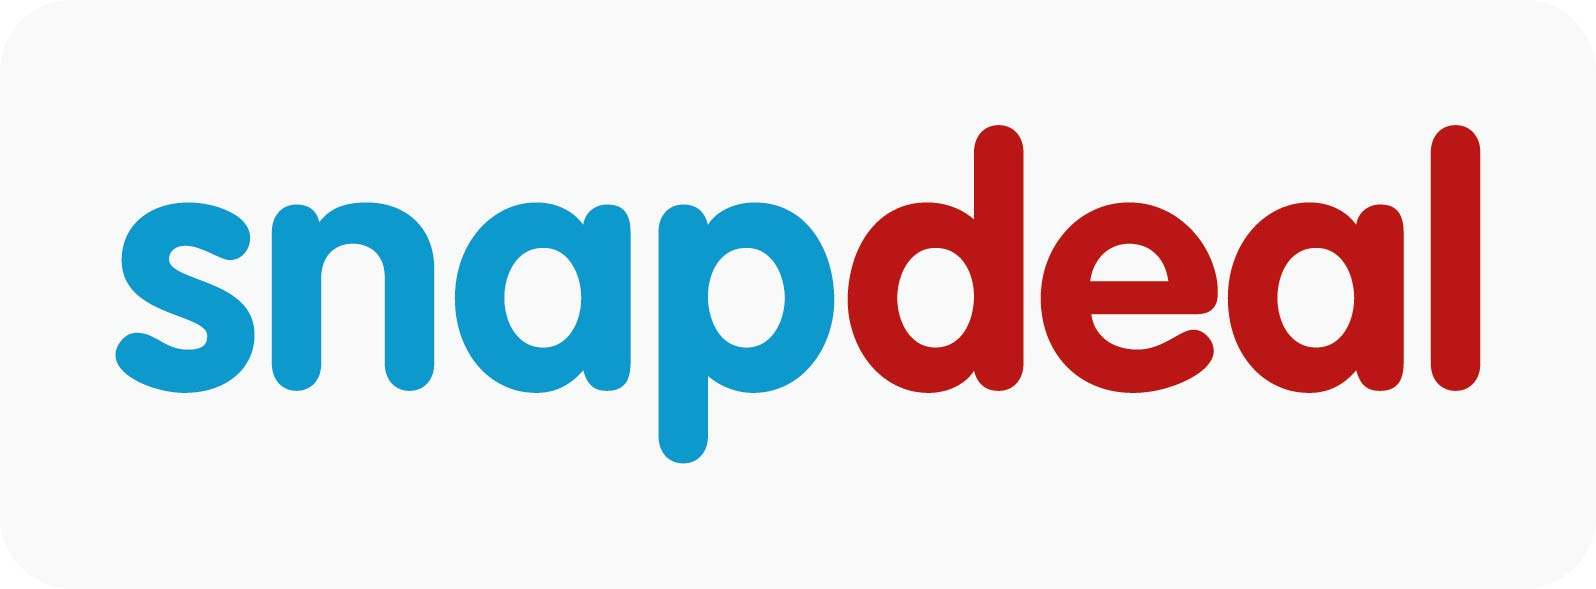 Snapdeal App - Get flat Rs 100 cashback on 1st Purchase of Rs 100 or more